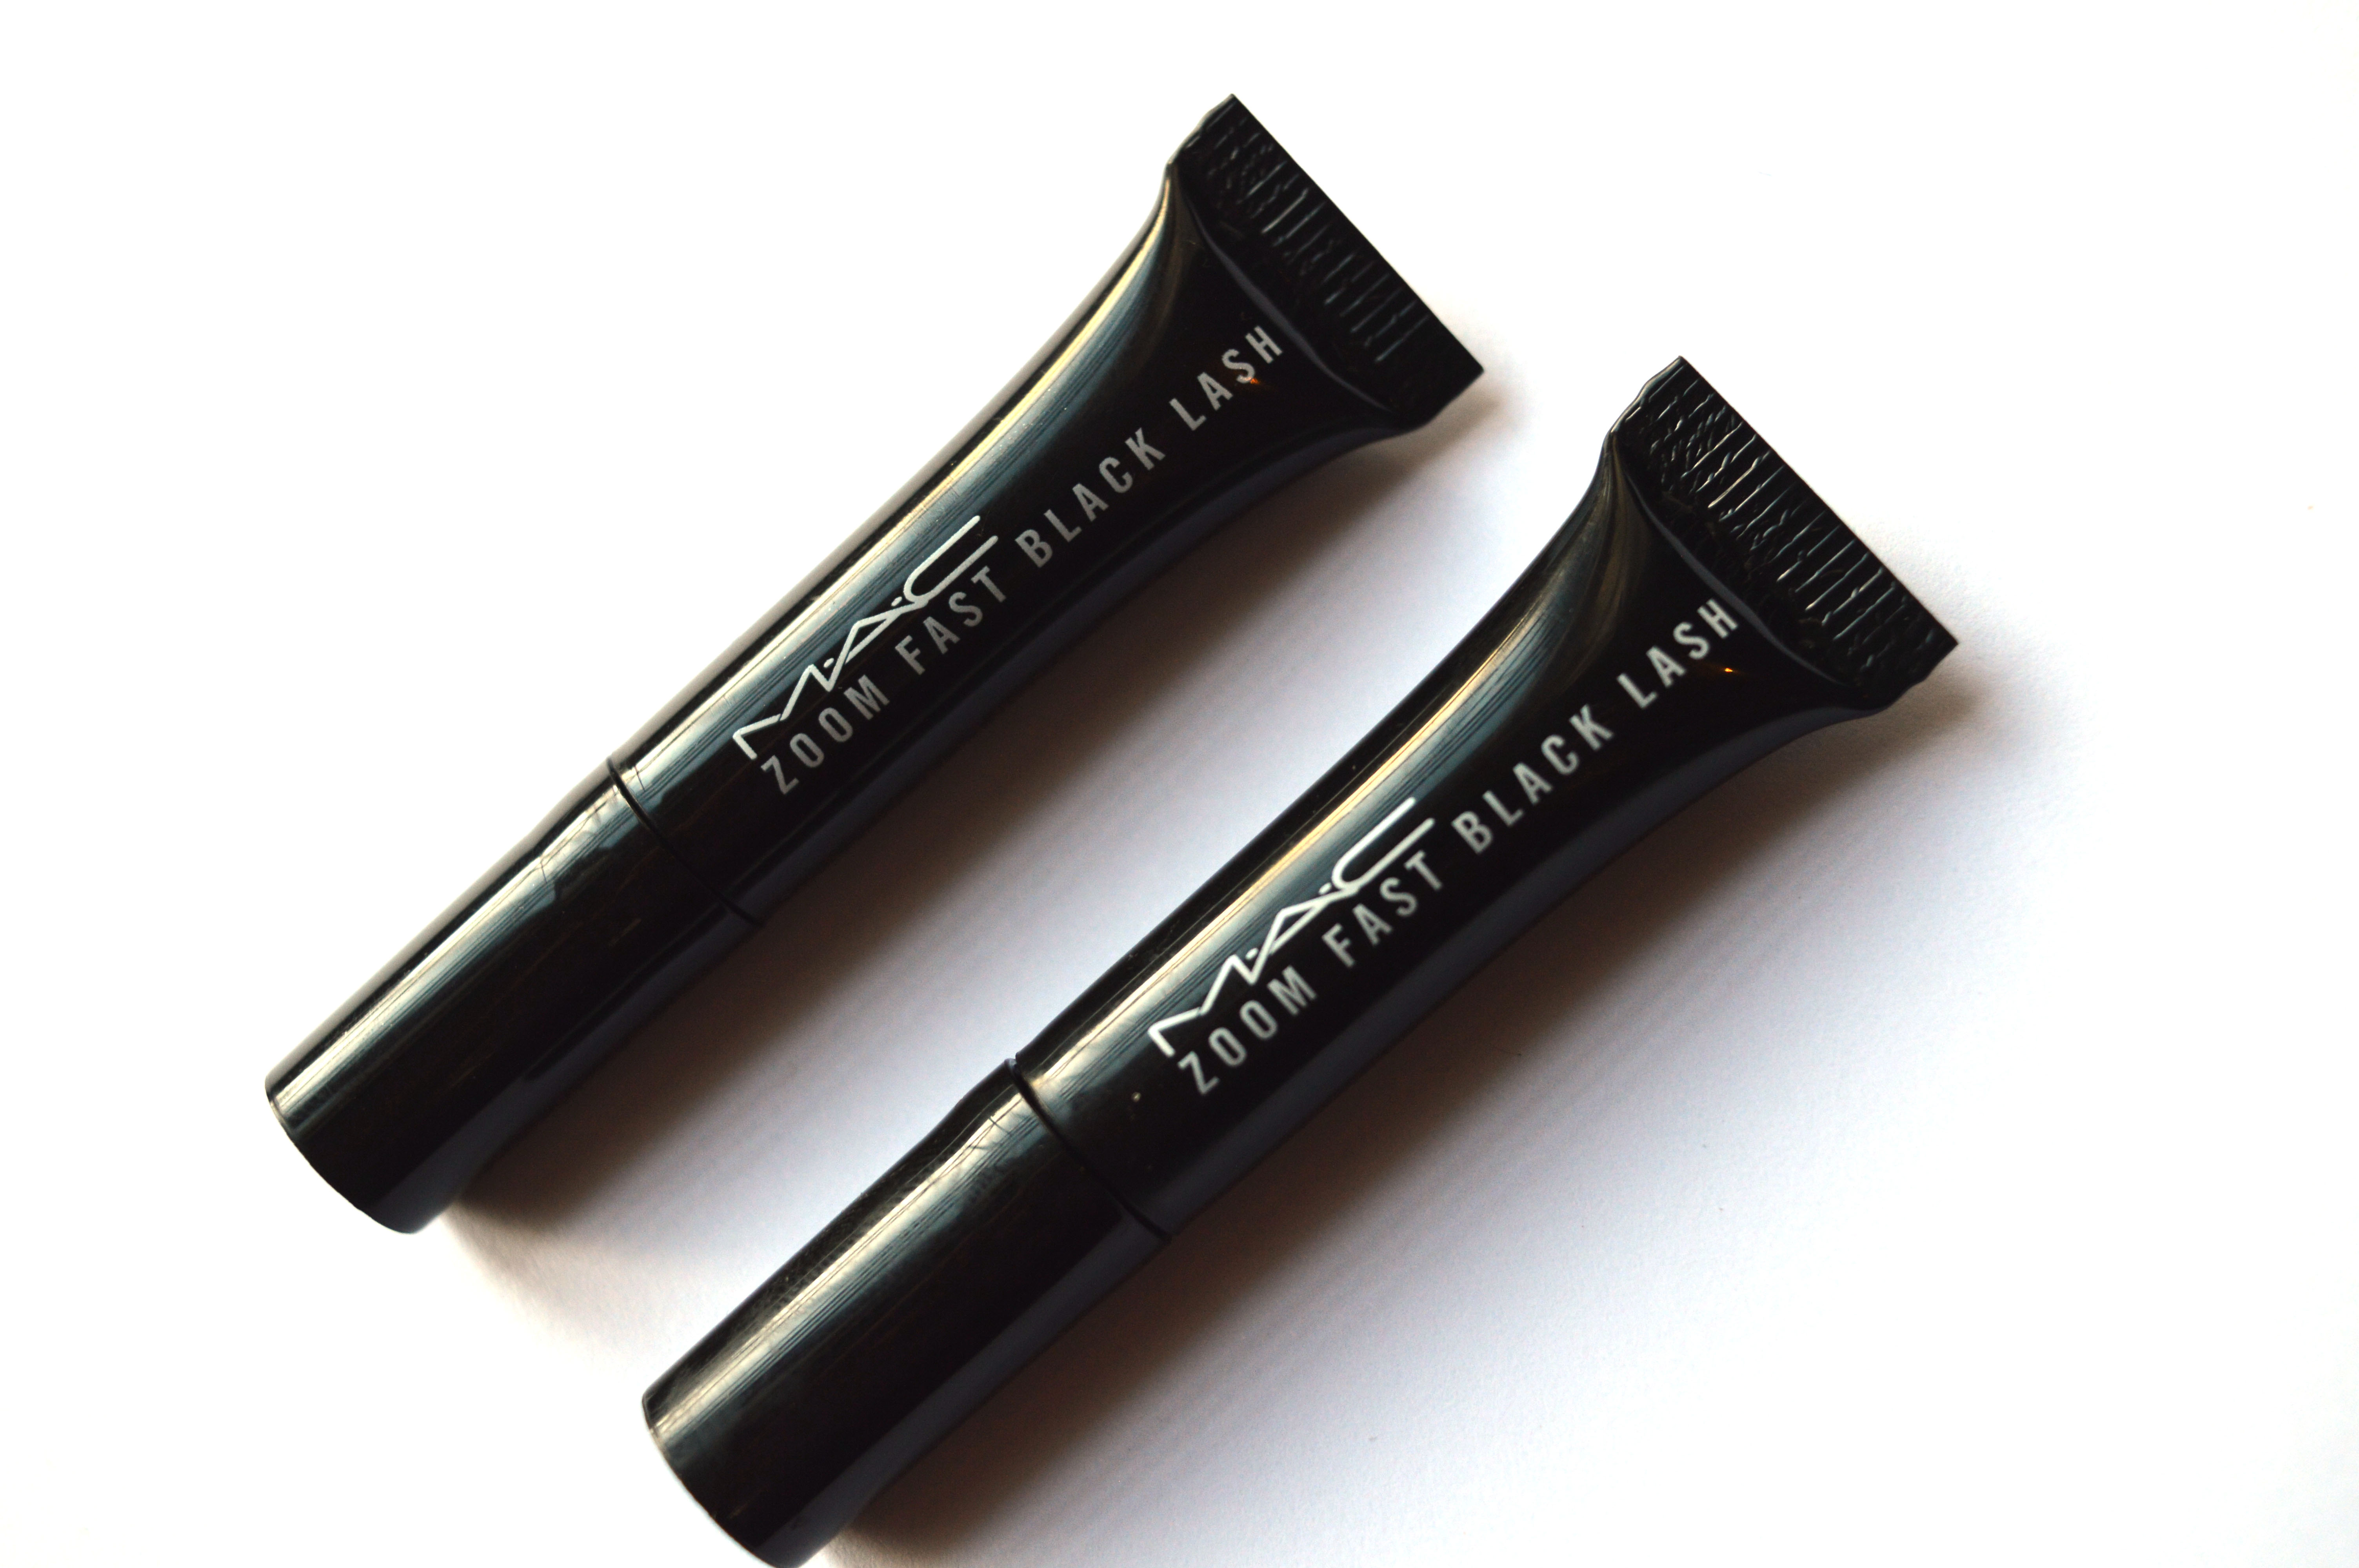 mac zoom fast black lash mascara